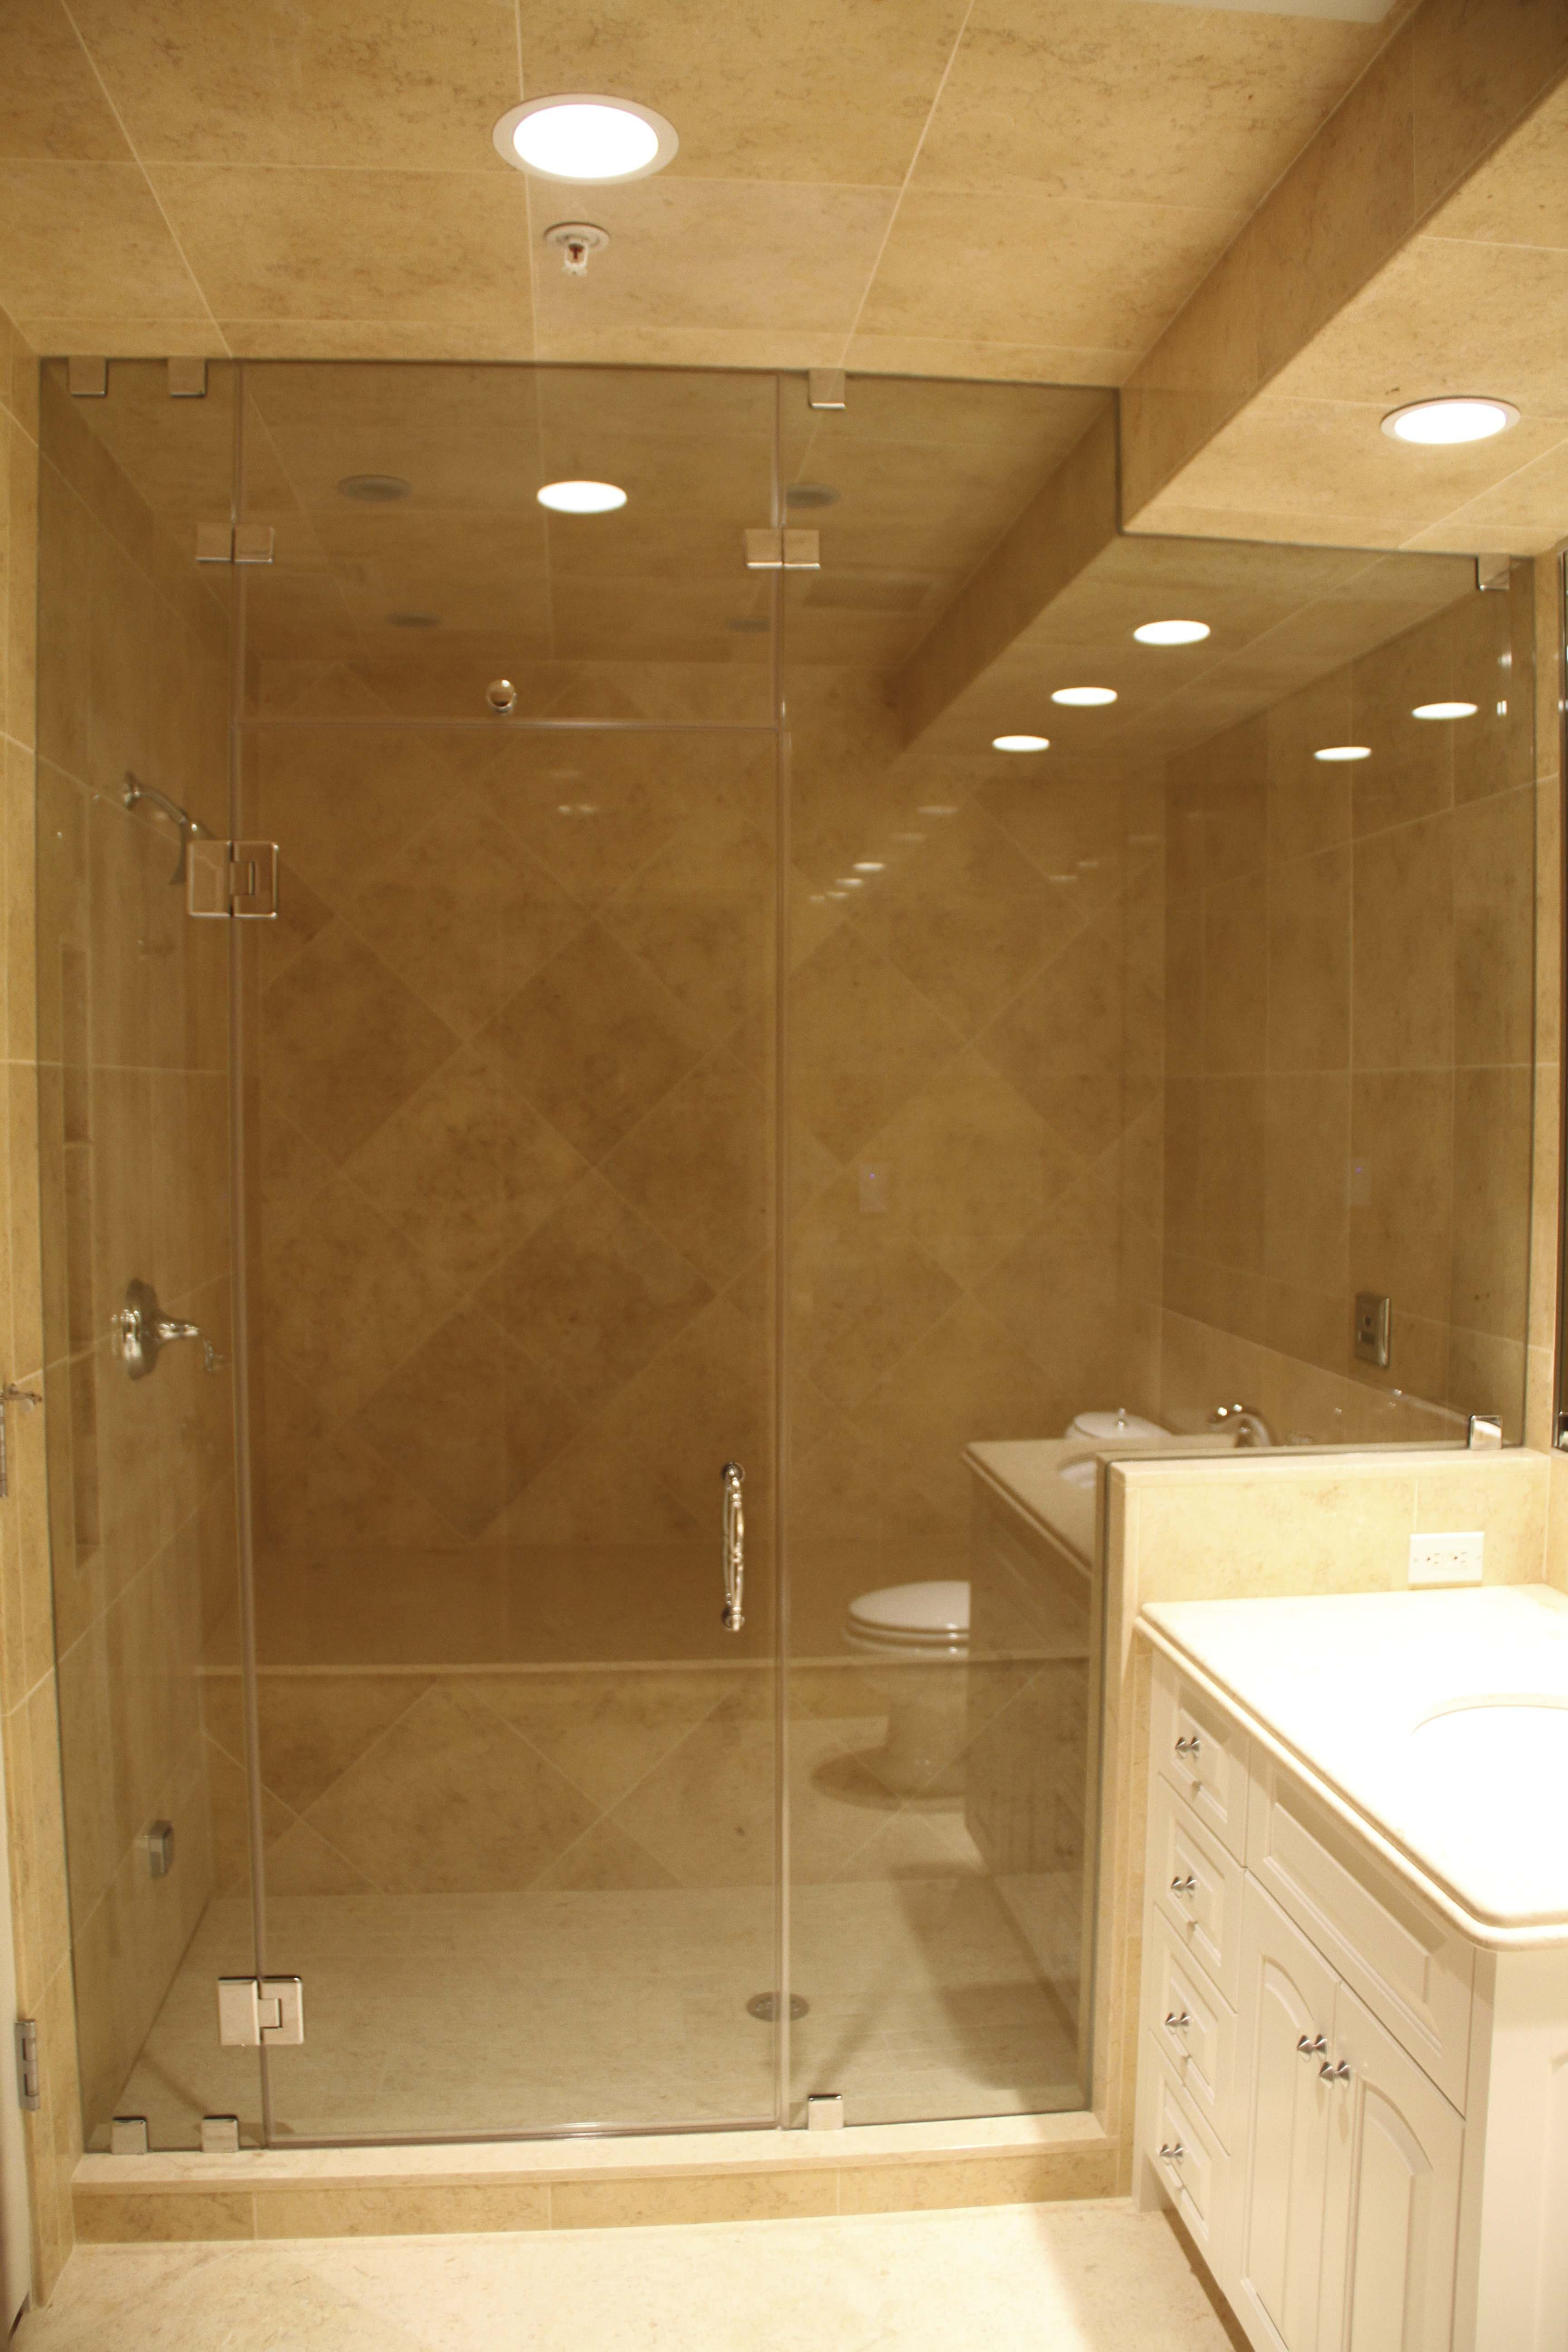 Frameless Shower Enclosure Steam Unit With Venting Transom Above The Door Hinged Glass